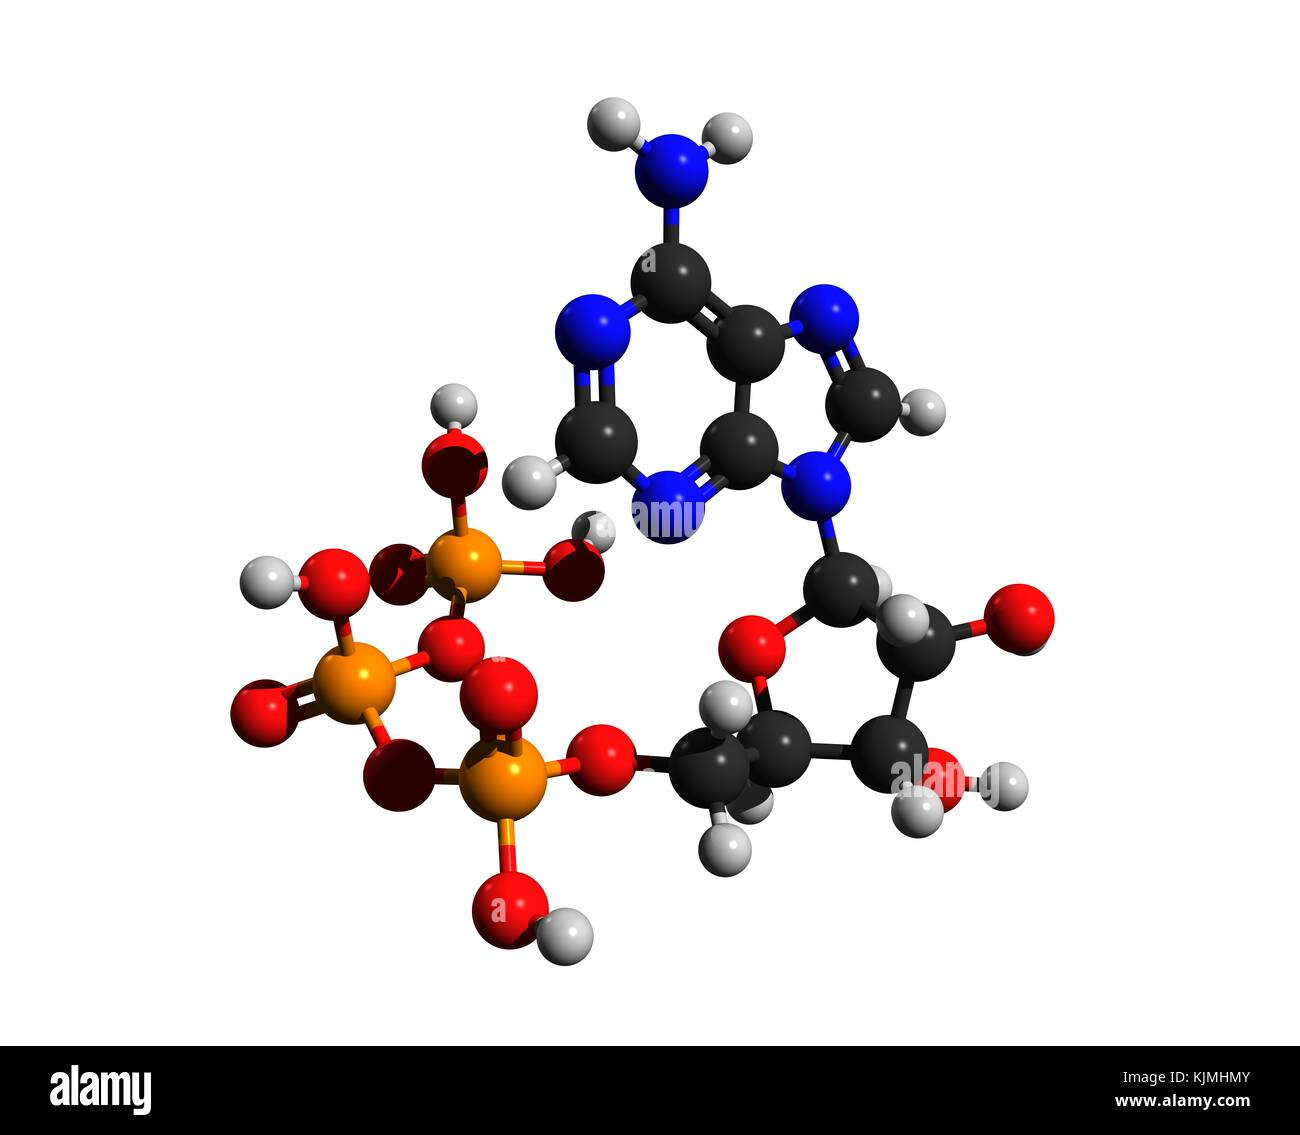 Molecular structure of adenosine triphosphate (ATP), a complex organic chemical, 3D rendering Stock Photo